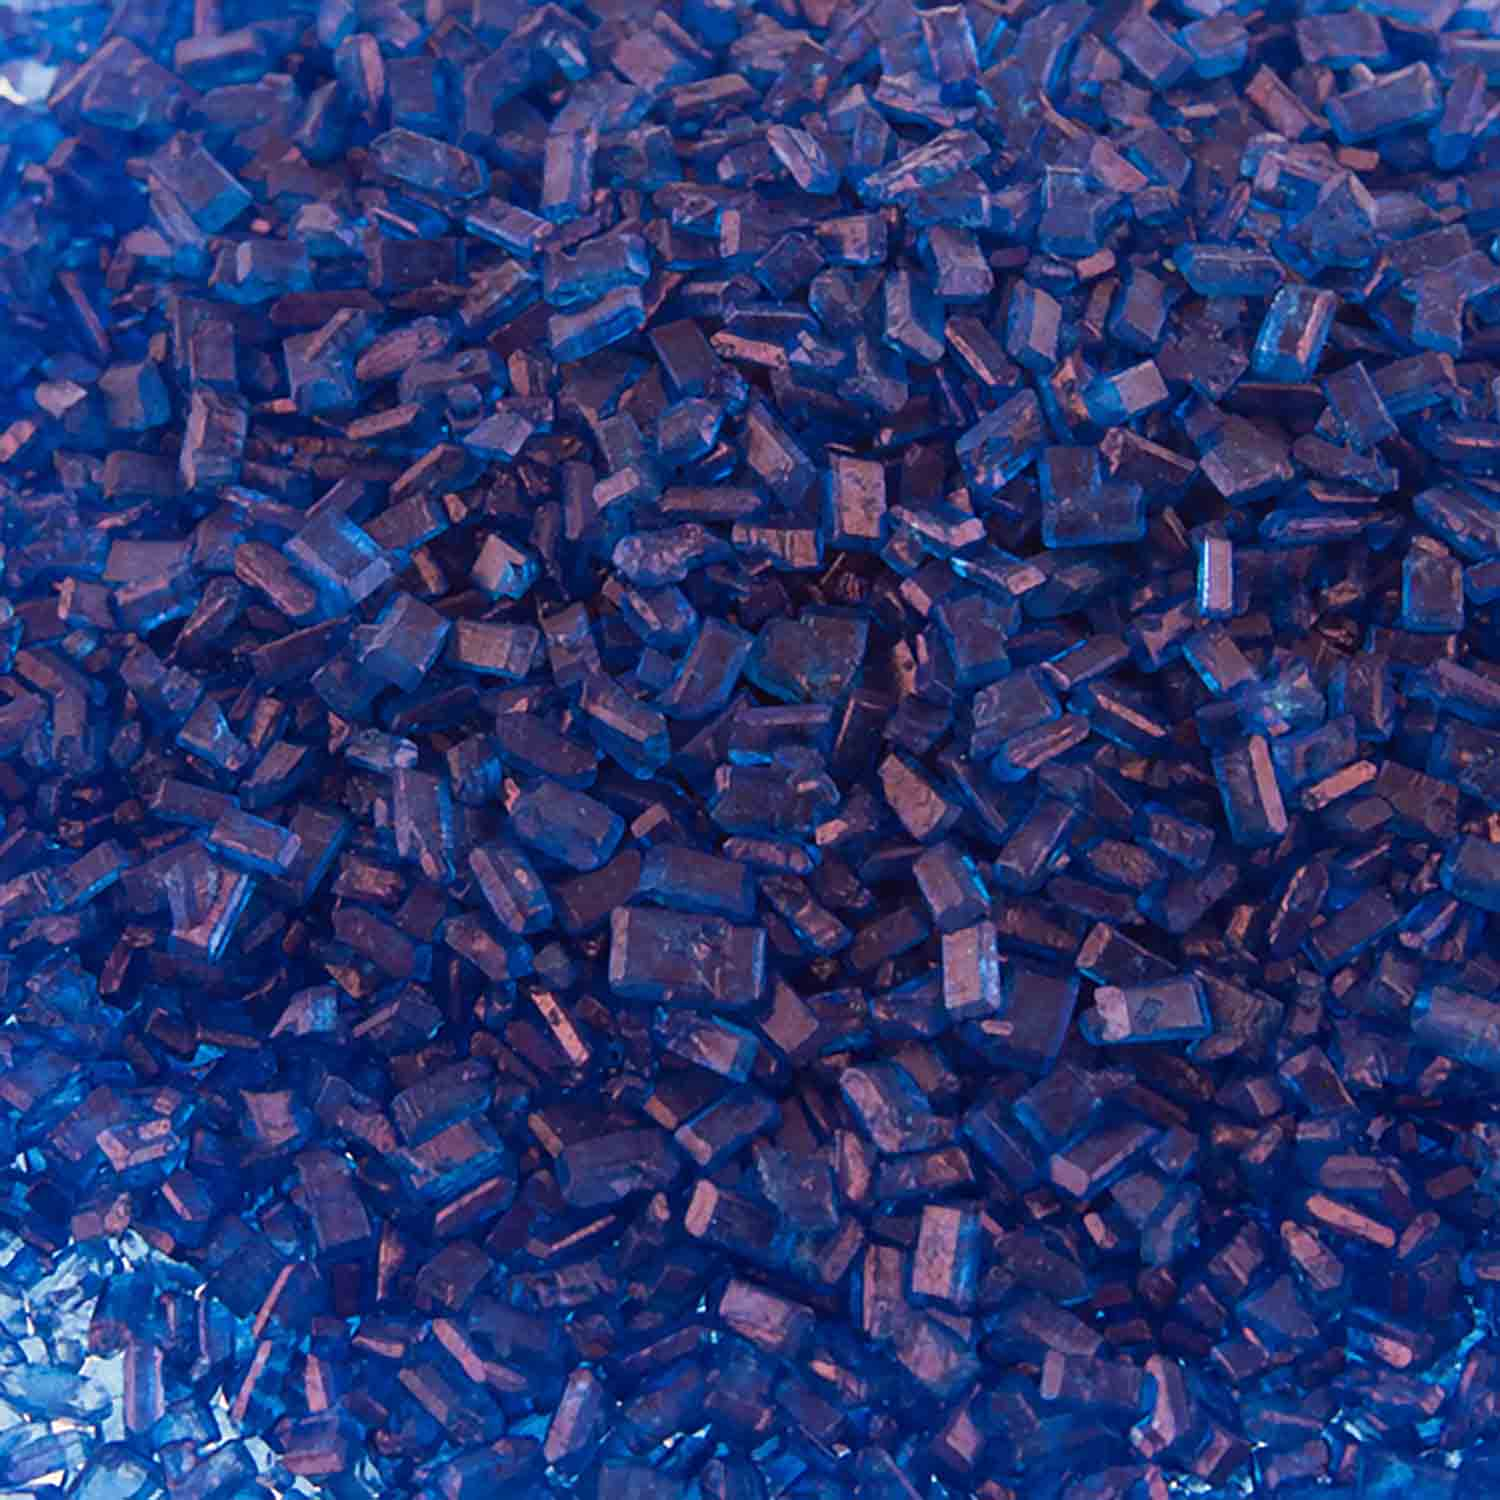 Royal Blue Coarse Sugar / Sugar Crystals